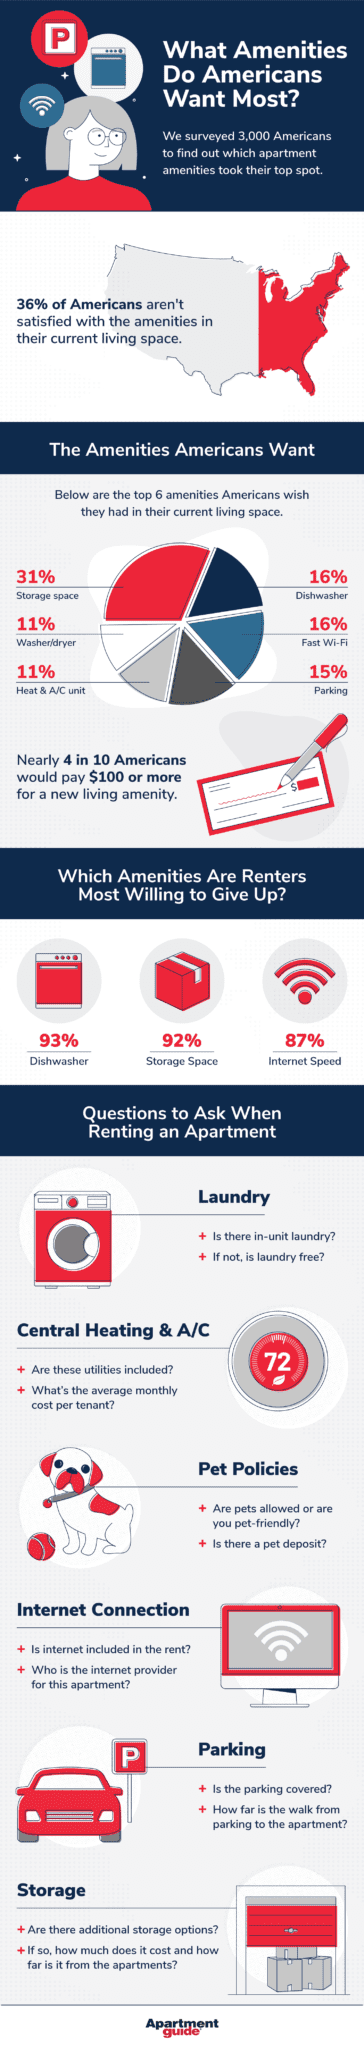 What Amenities do Americans Want Most?